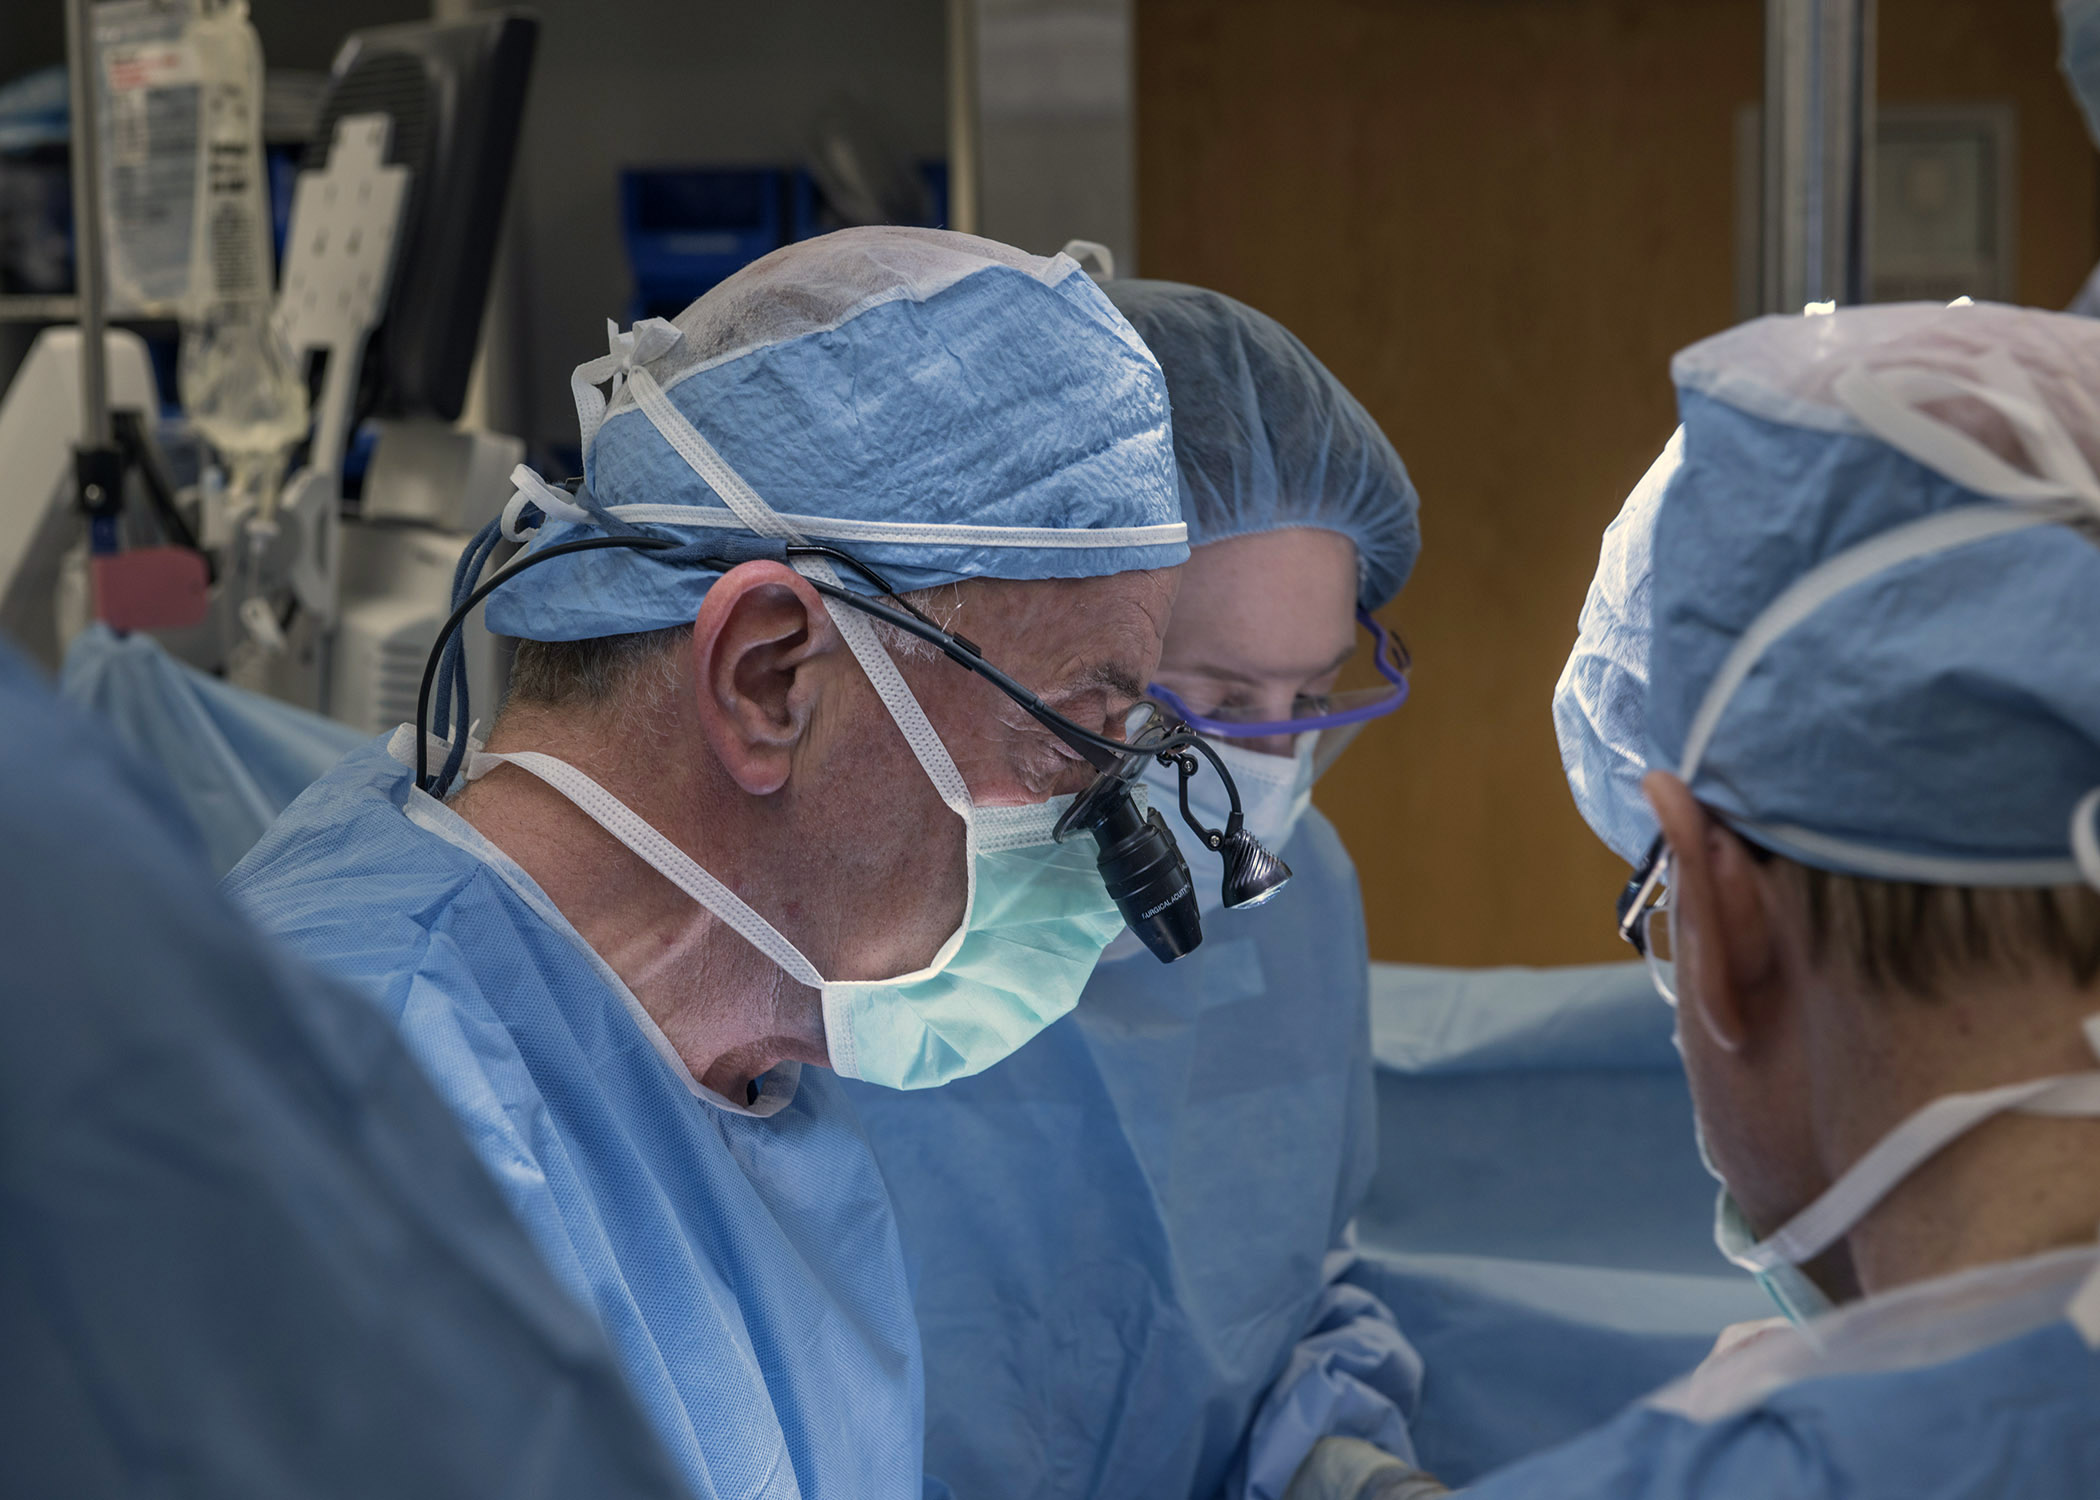 Check up on surgeons' success rate